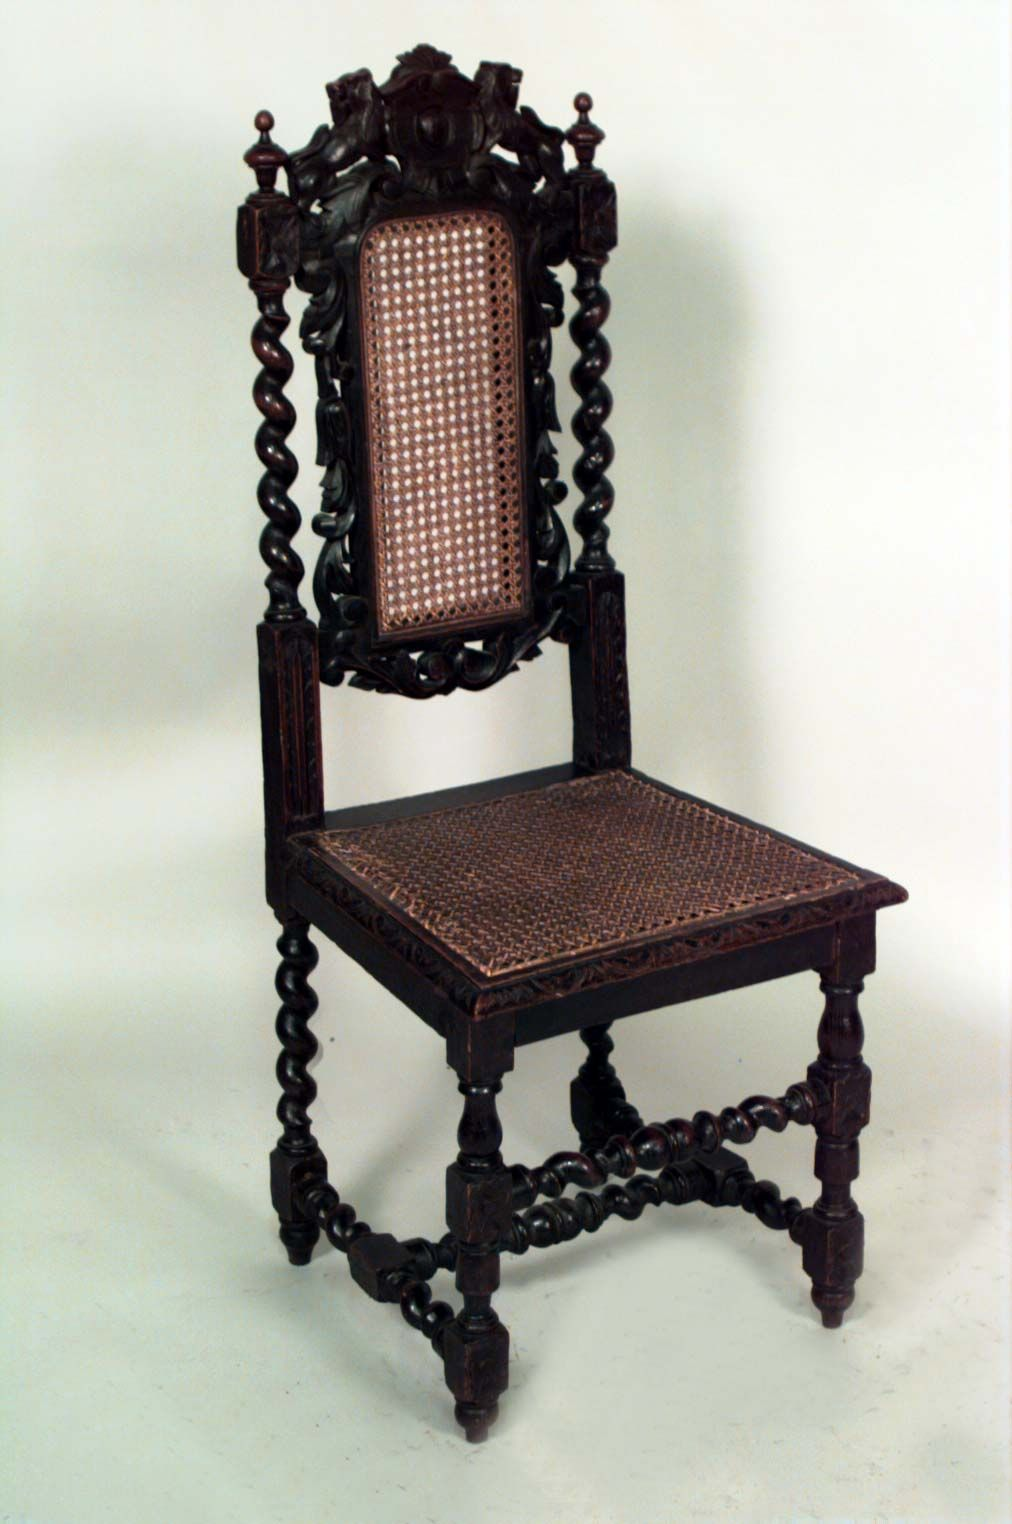 Set Of 4 English Jacobean Style Oak Side Chairs With Cane Seat And Back And  Lions On Top Of Back Cent.